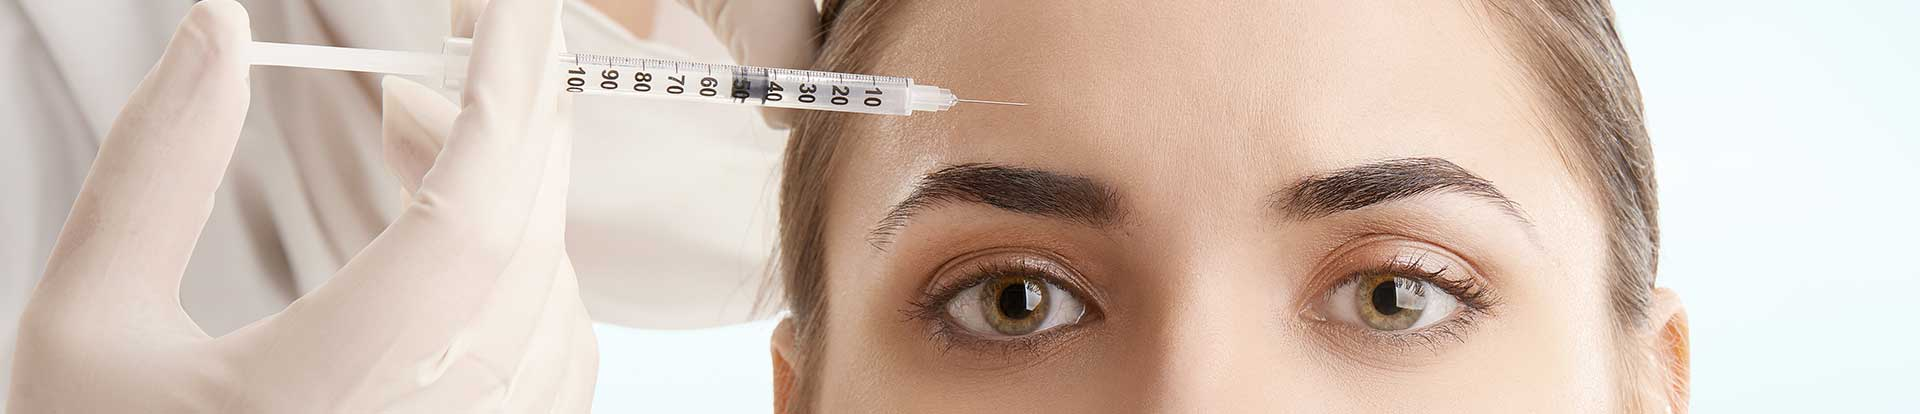 injectables header